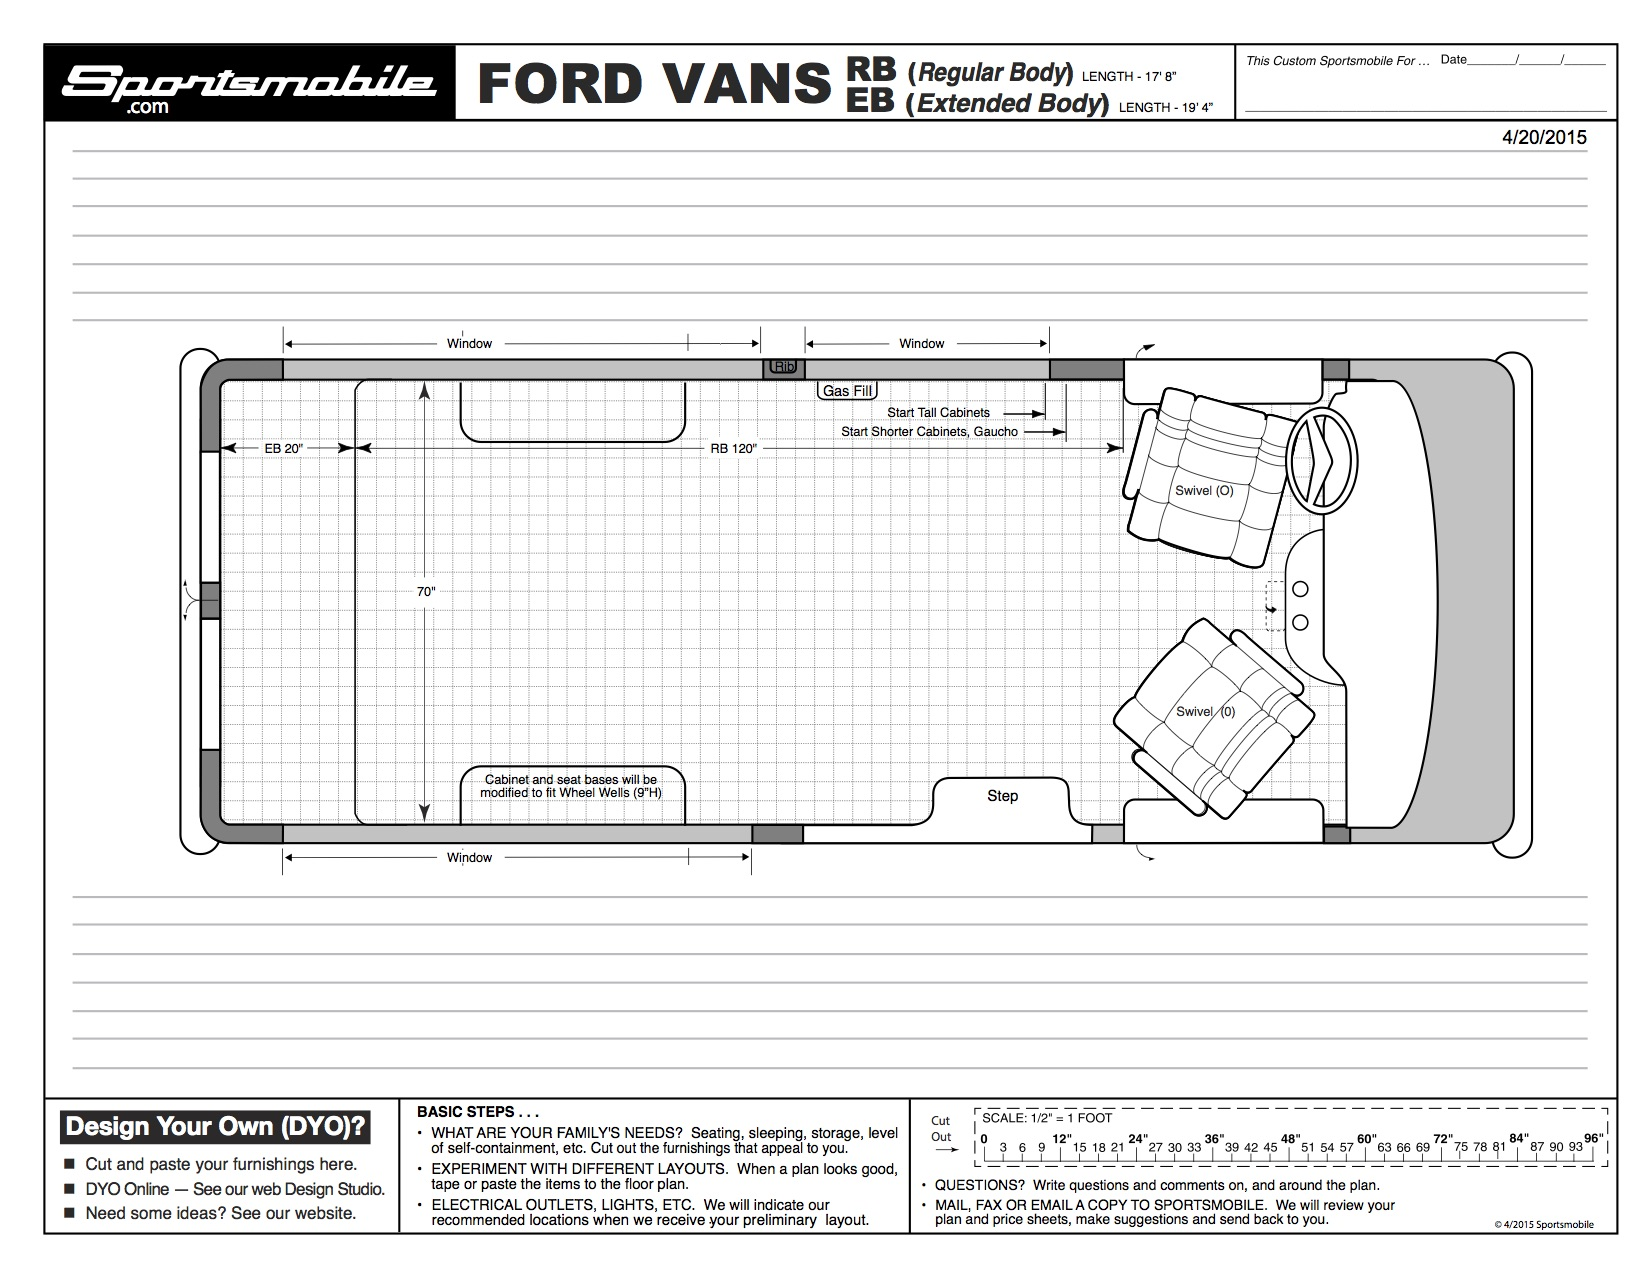 Ford Transit Dimensions >> Dimensions For Popular Vans In Blueprint Style The Build